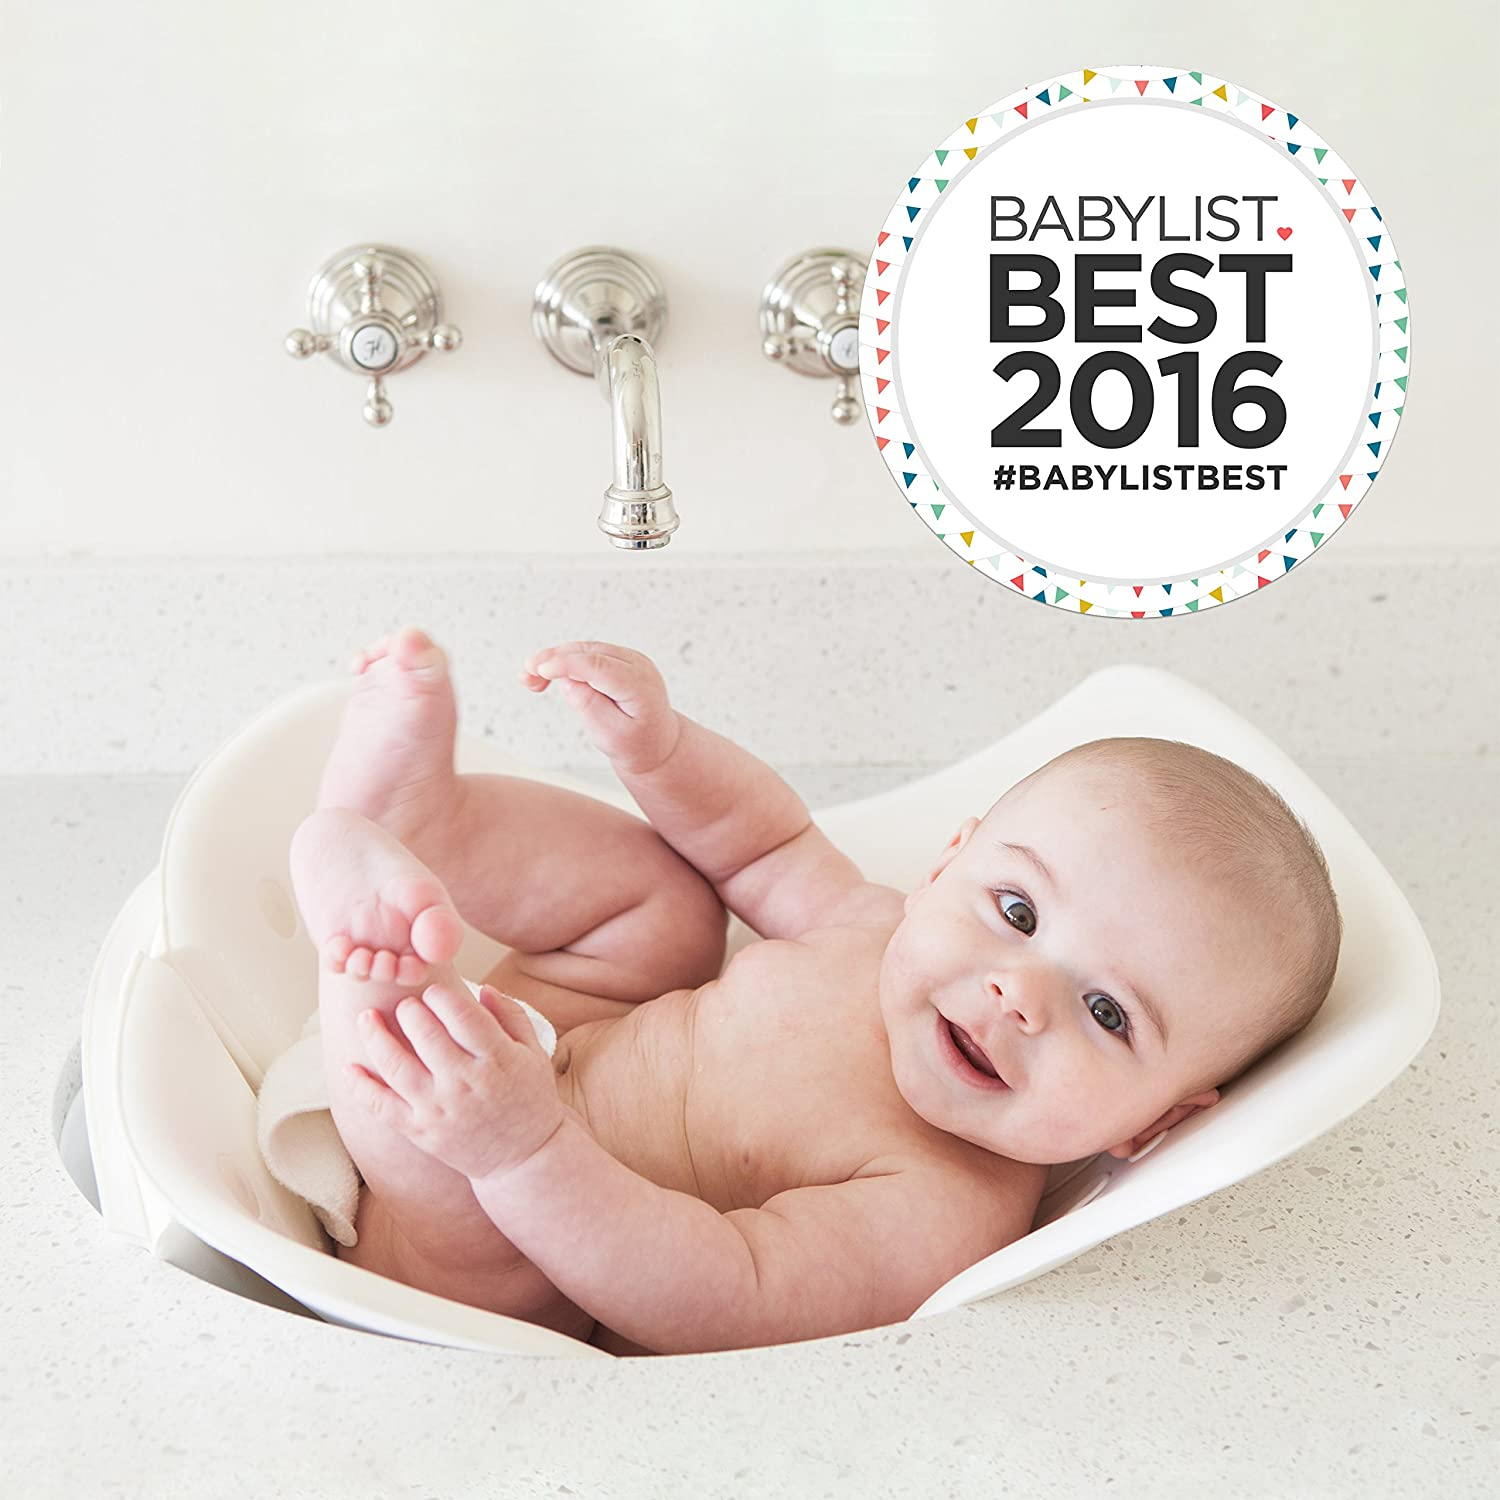 Bathing Your Baby: Organic baby shampoo, non-toxic bathtubs, and more